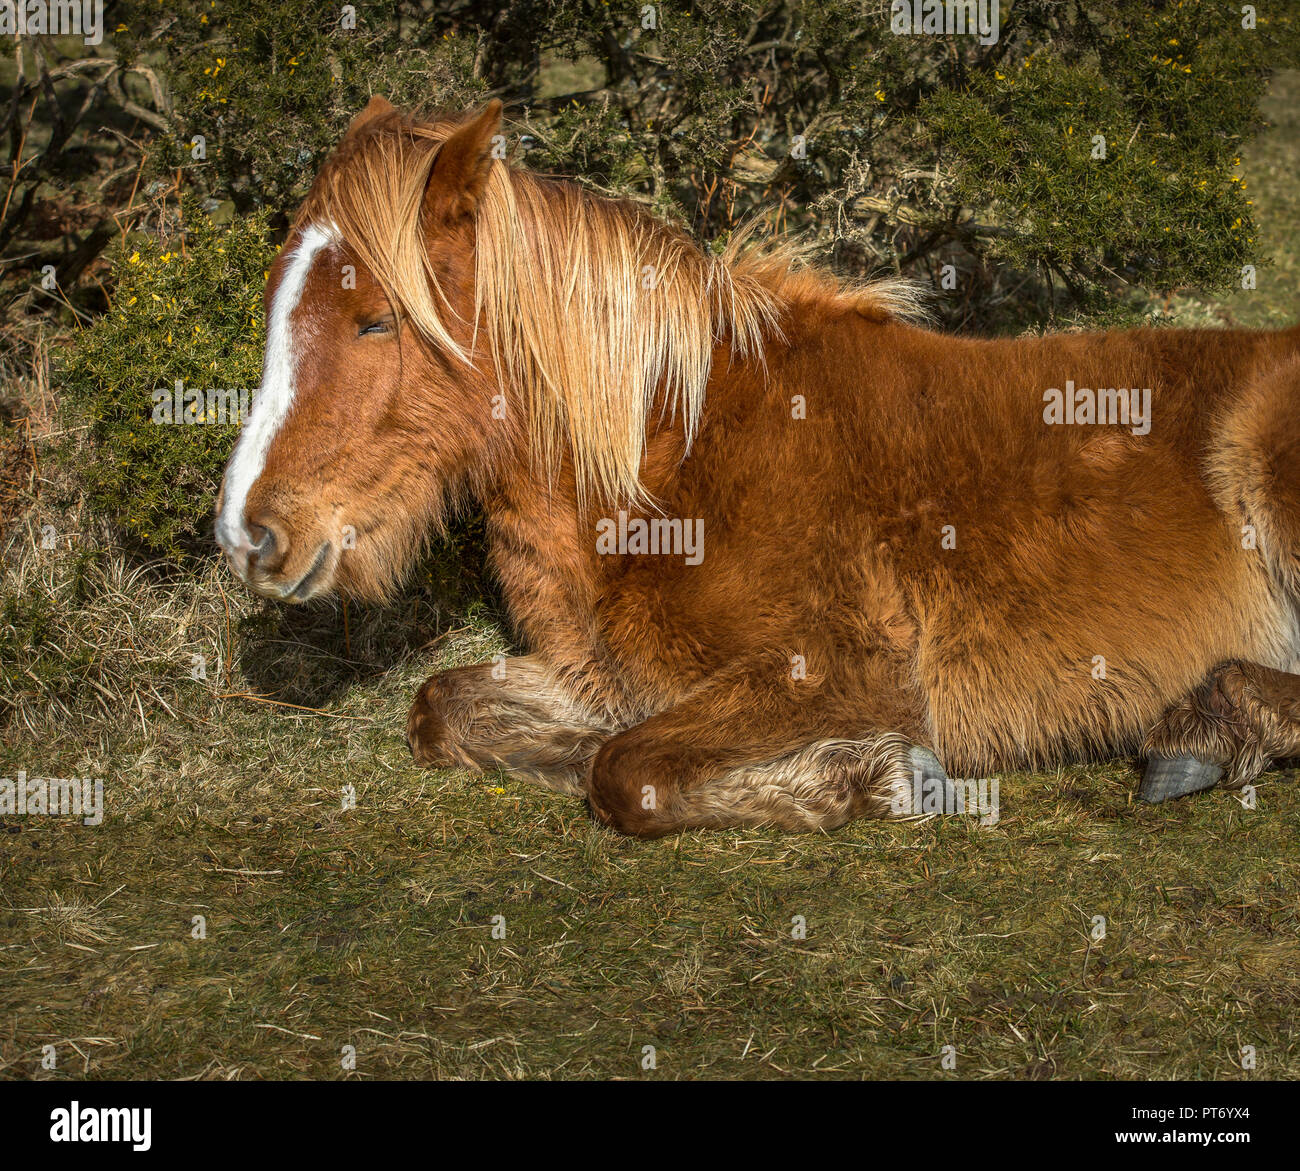 Young Wild Pony Snoozing, Bodmin Moor, Cornwall - Stock Image